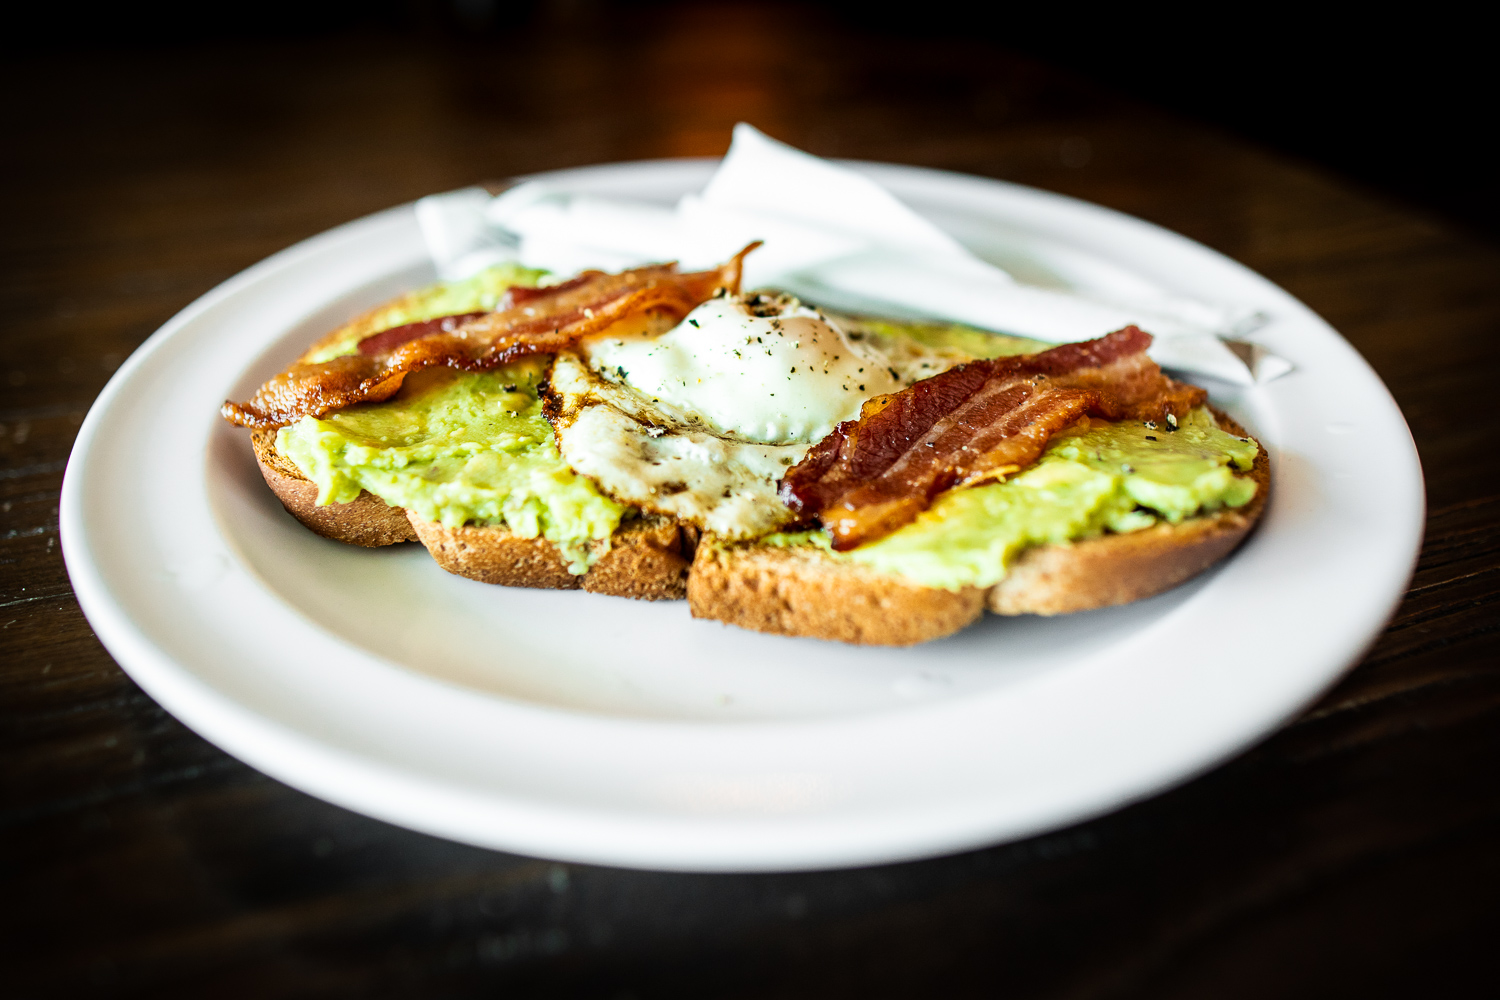 Avocado toast (served all day!) at Boulder Creek Coffee in Lawrenceville, GA. The avocado toast comes with sea salt, cracked paper, and bacon.